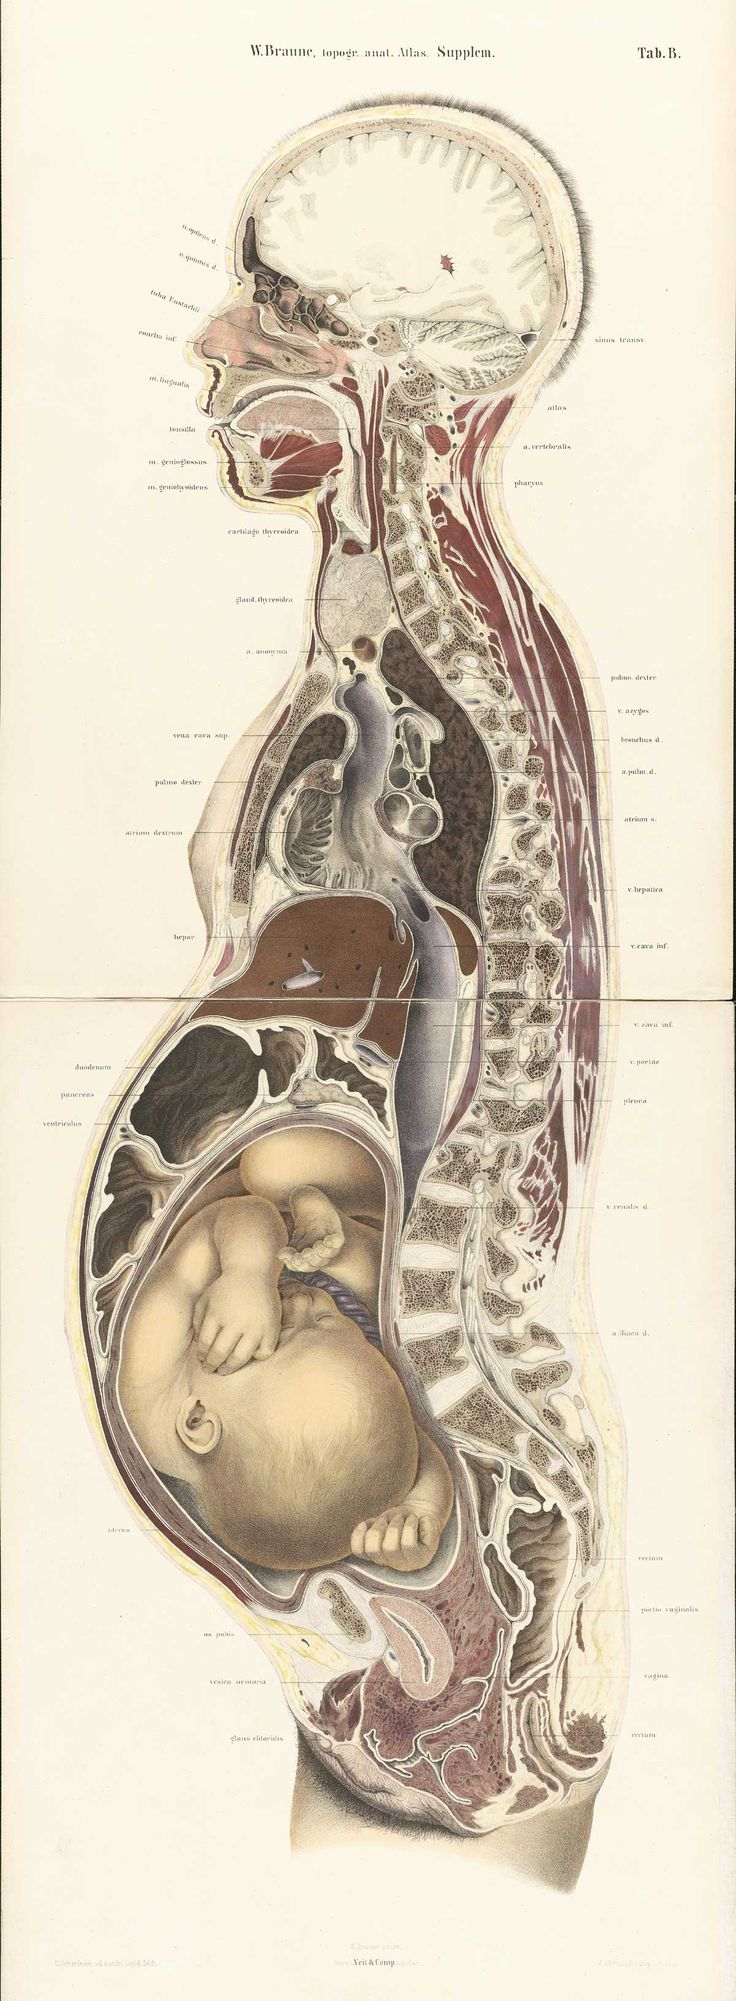 pregnant female body cross-section, by Wilhelm Braune, from Topographisch-anatomischer Atlas : nach Durchschnitten an gefrornen Cadavern, 1867-1872